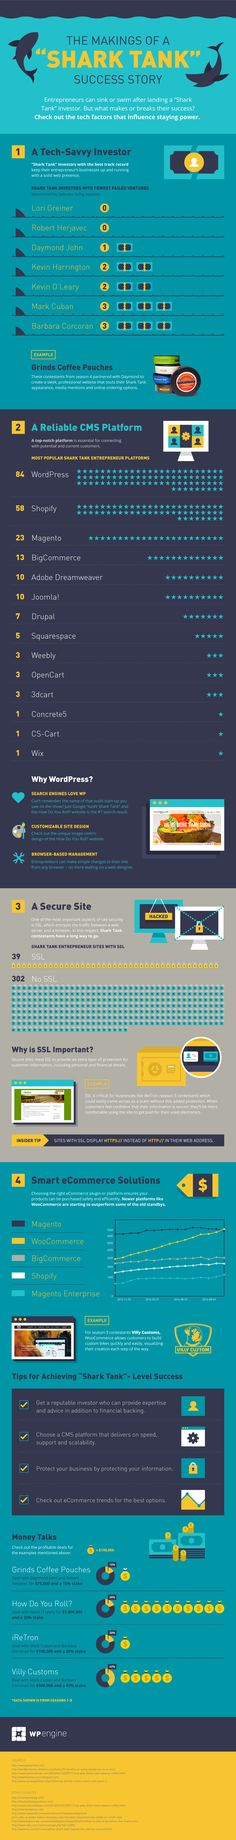 How Do Shark Tank Entrepreneurs Build Their Websites? (Infographic)